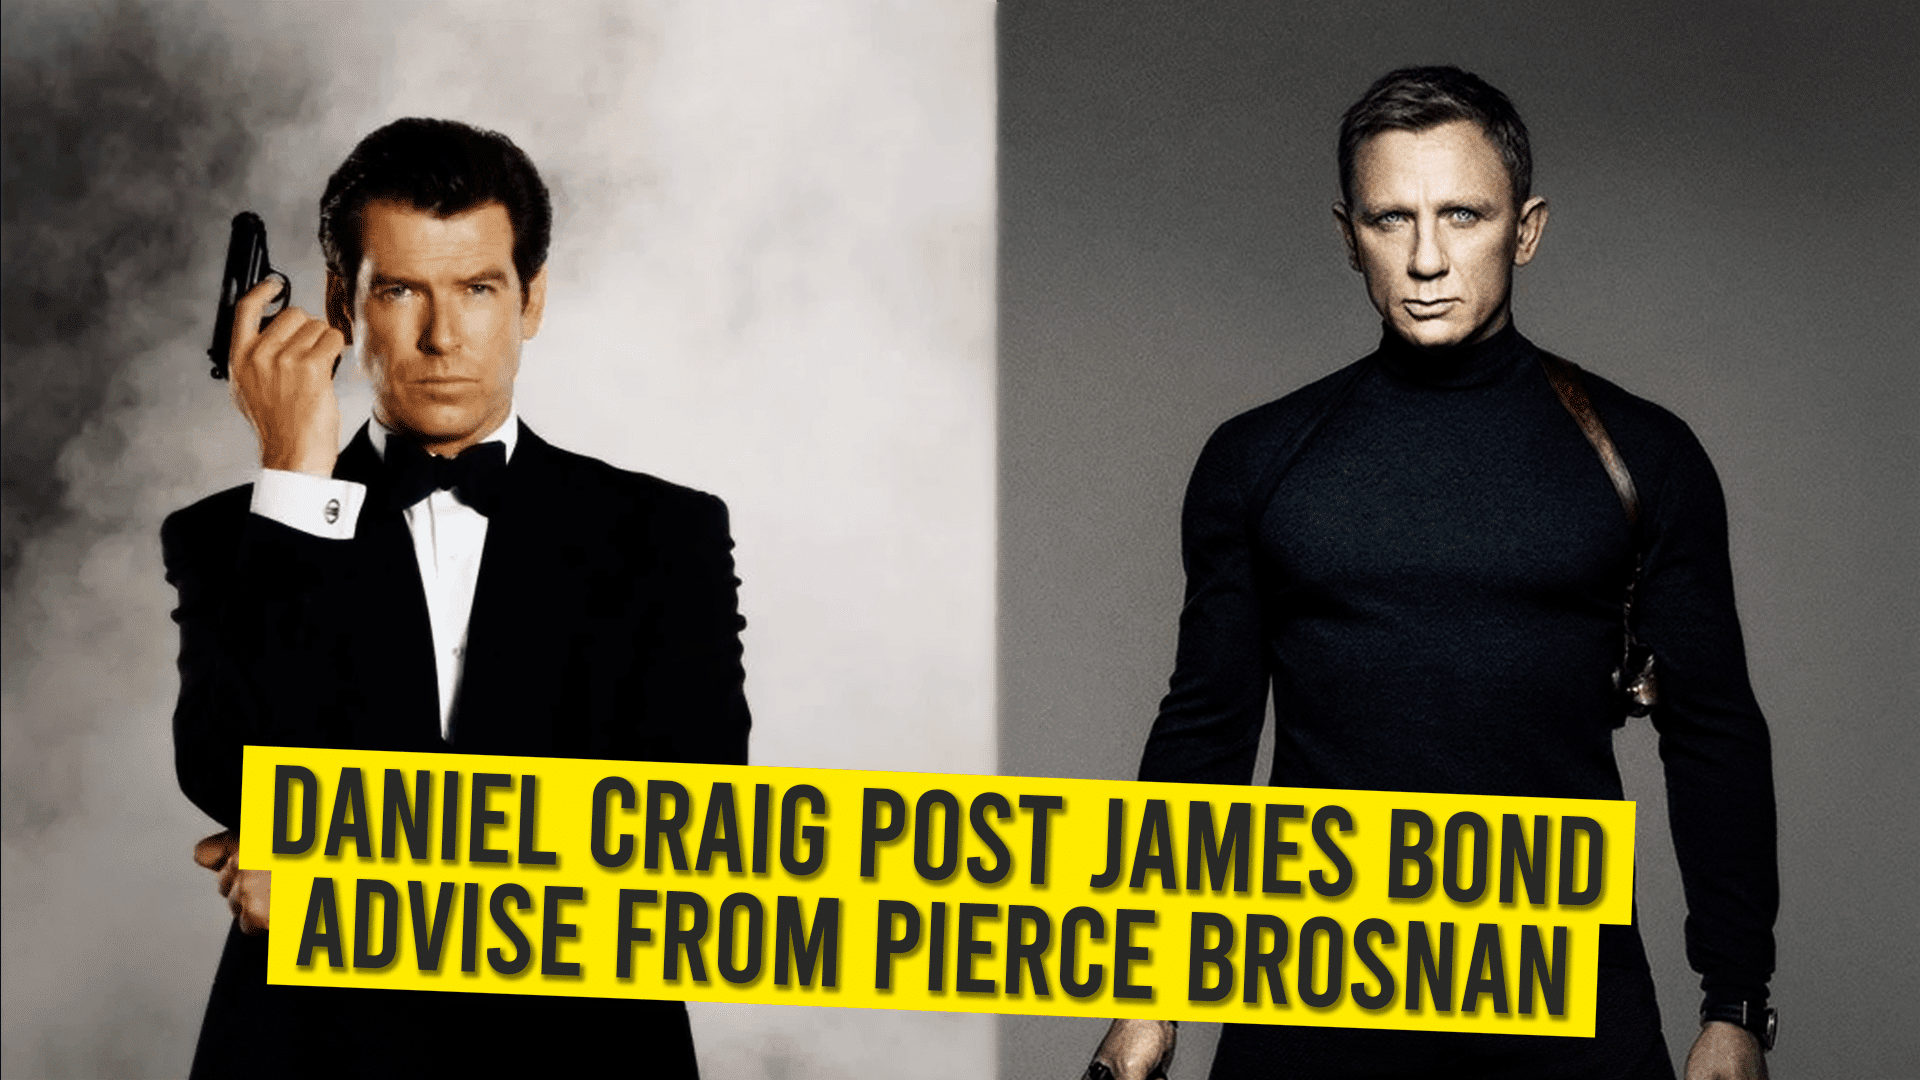 Daniel Craig Post James Bond Advice From Pierce Brosnan